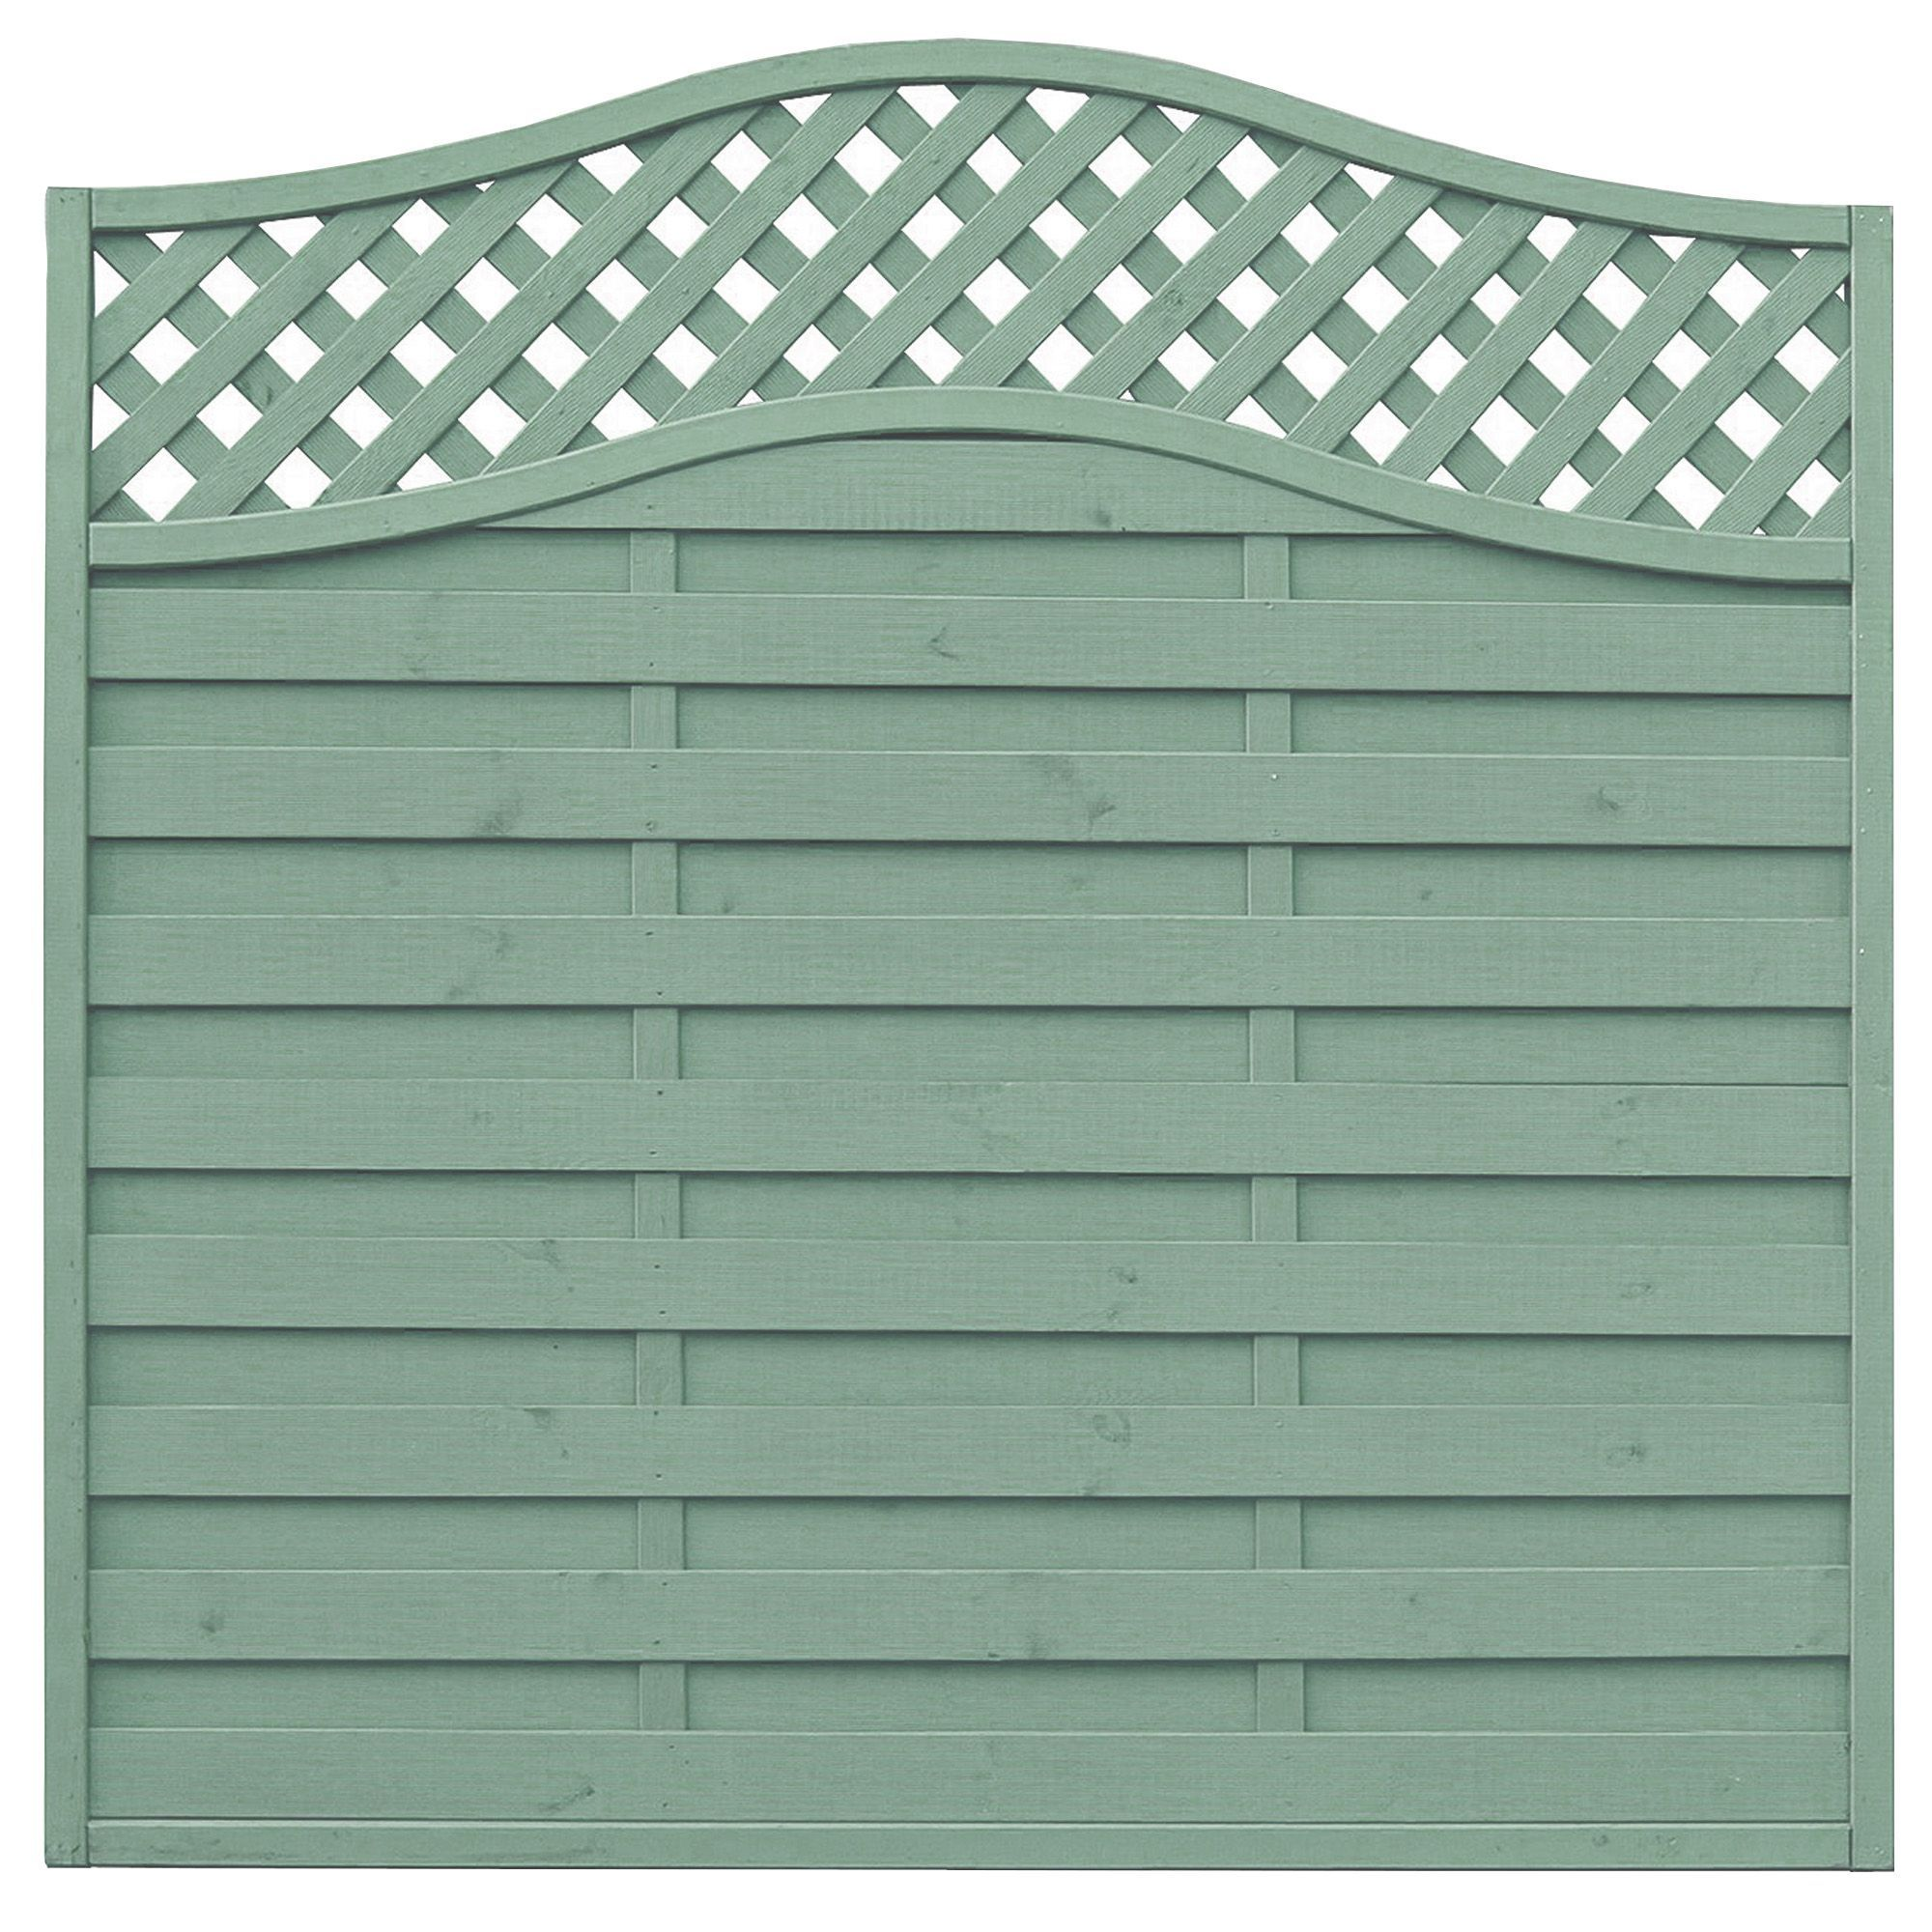 Grange Woodbury Lattice Top Fence Panel (W)1.8 M (H)1.8 M, Pack of 5 |  Departments | DIY at B&Q